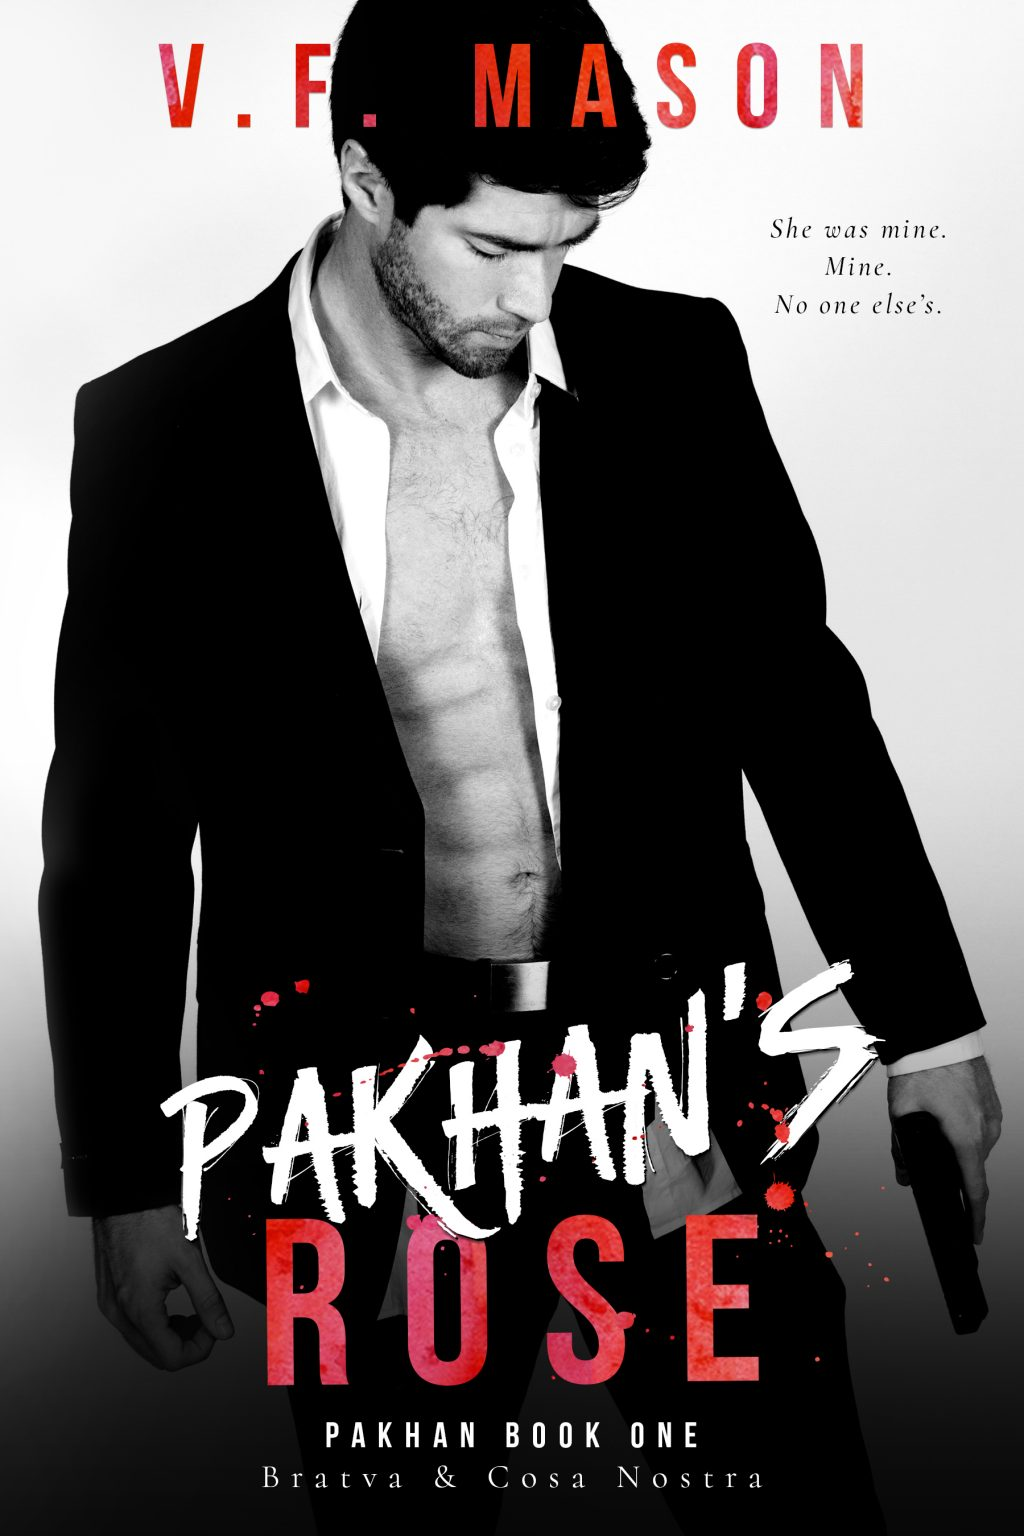 Pakhan's Rose (Pakhan Duet #1) by V.F. Mason